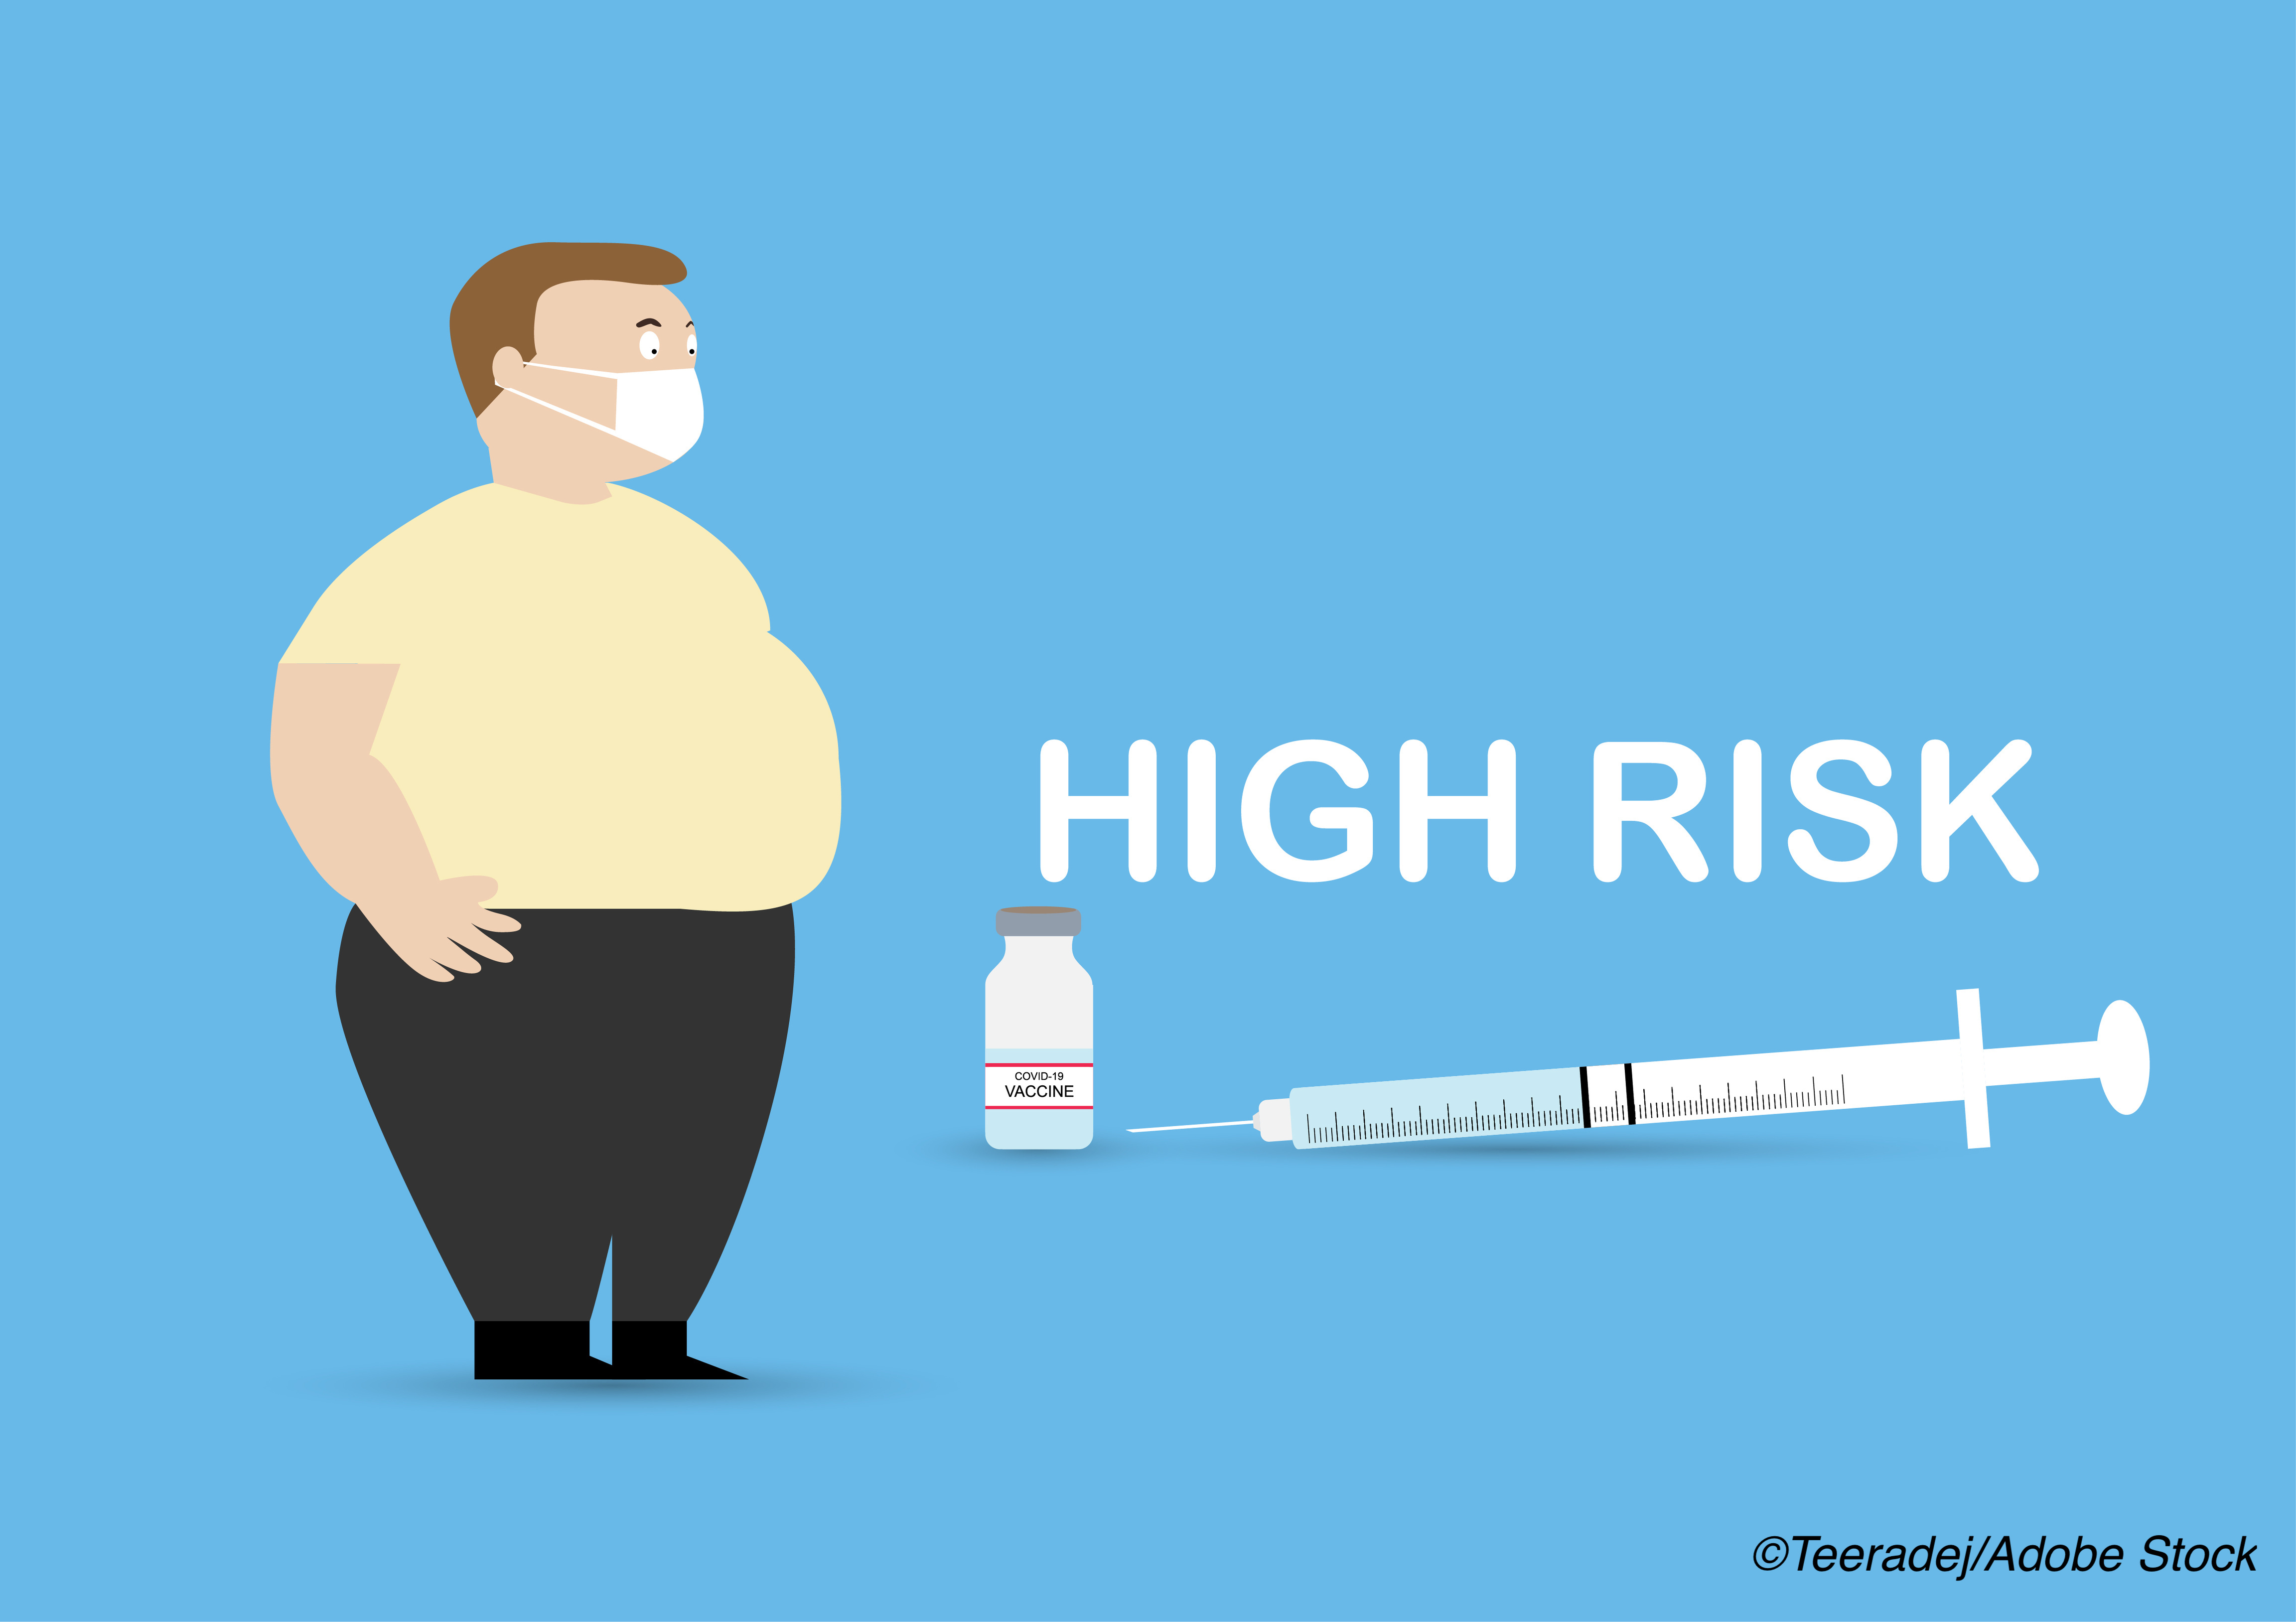 Increasing BMI Linearly Linked to Higher Severe Covid-19 Risk